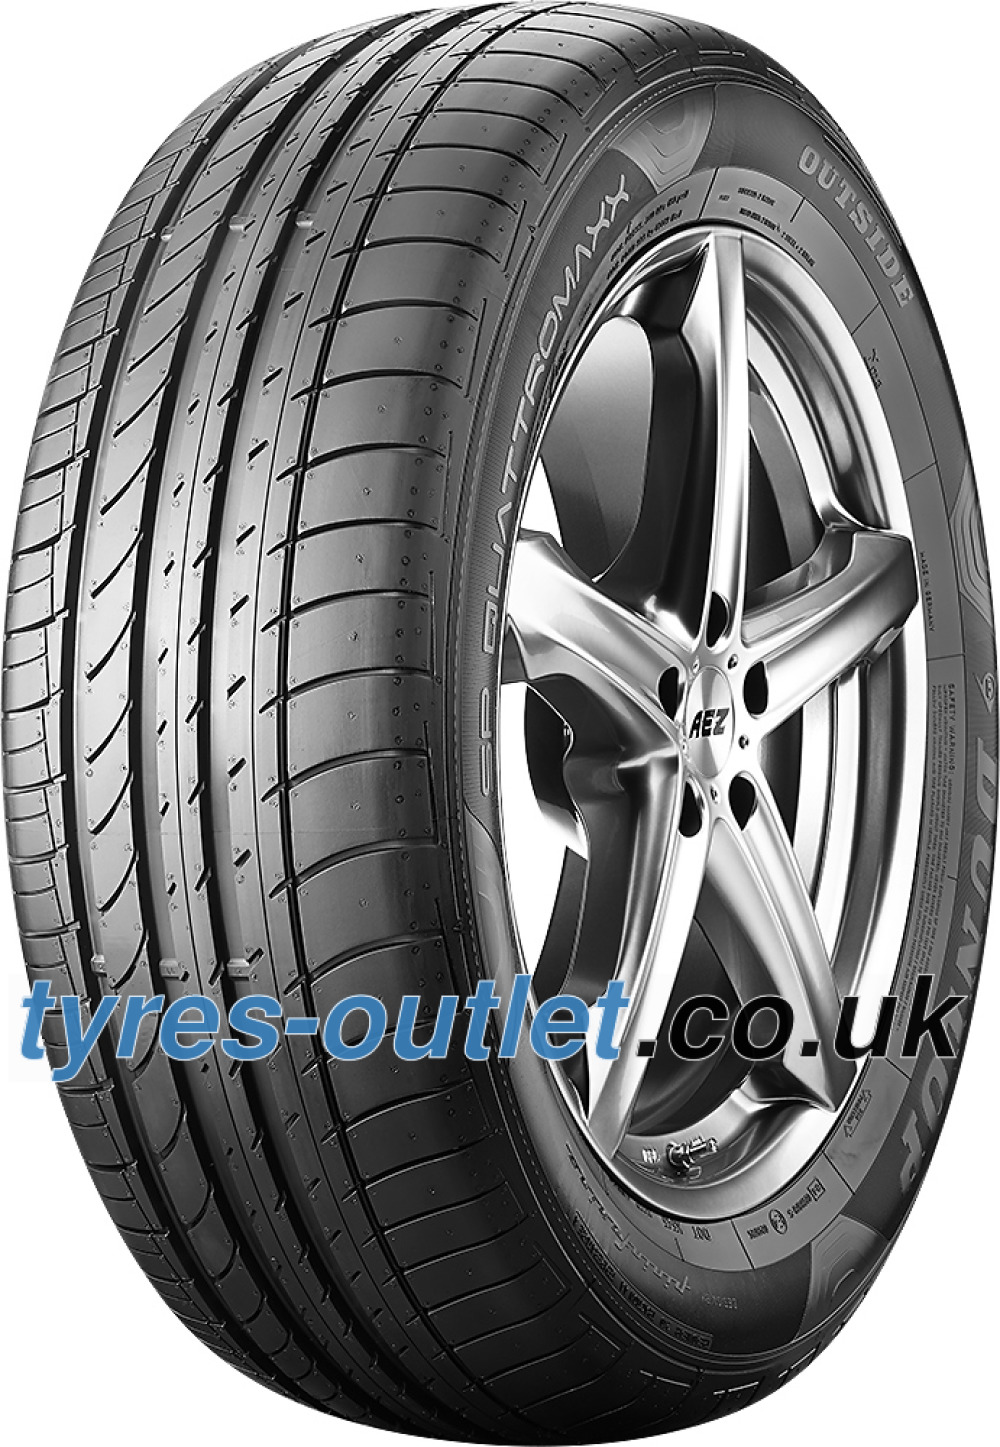 Dunlop SP QuattroMaxx ( 235/55 R18 100V with rim protection (MFS) )